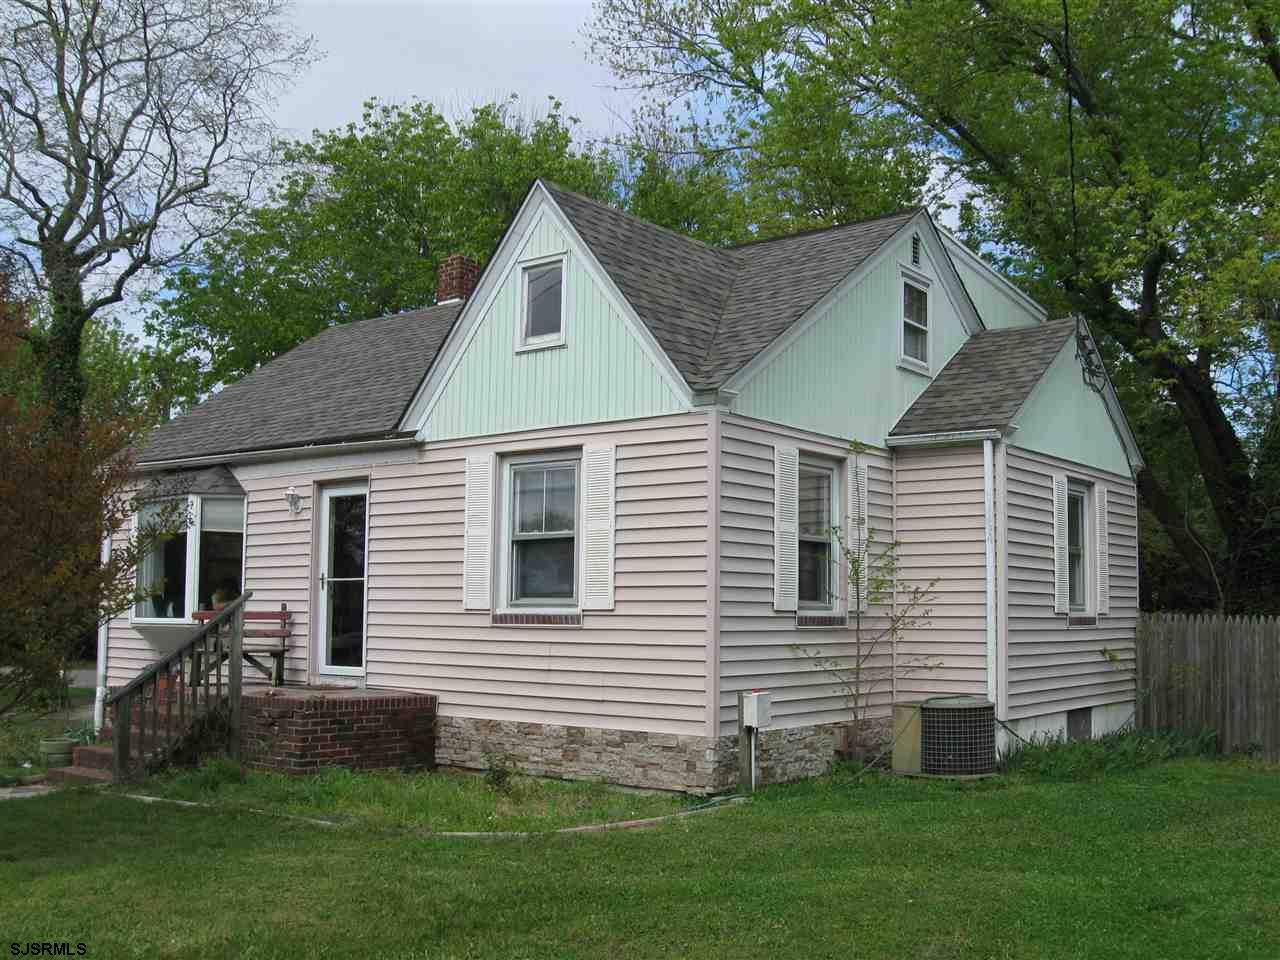 408 S Route 47, Cape May, NJ 08204